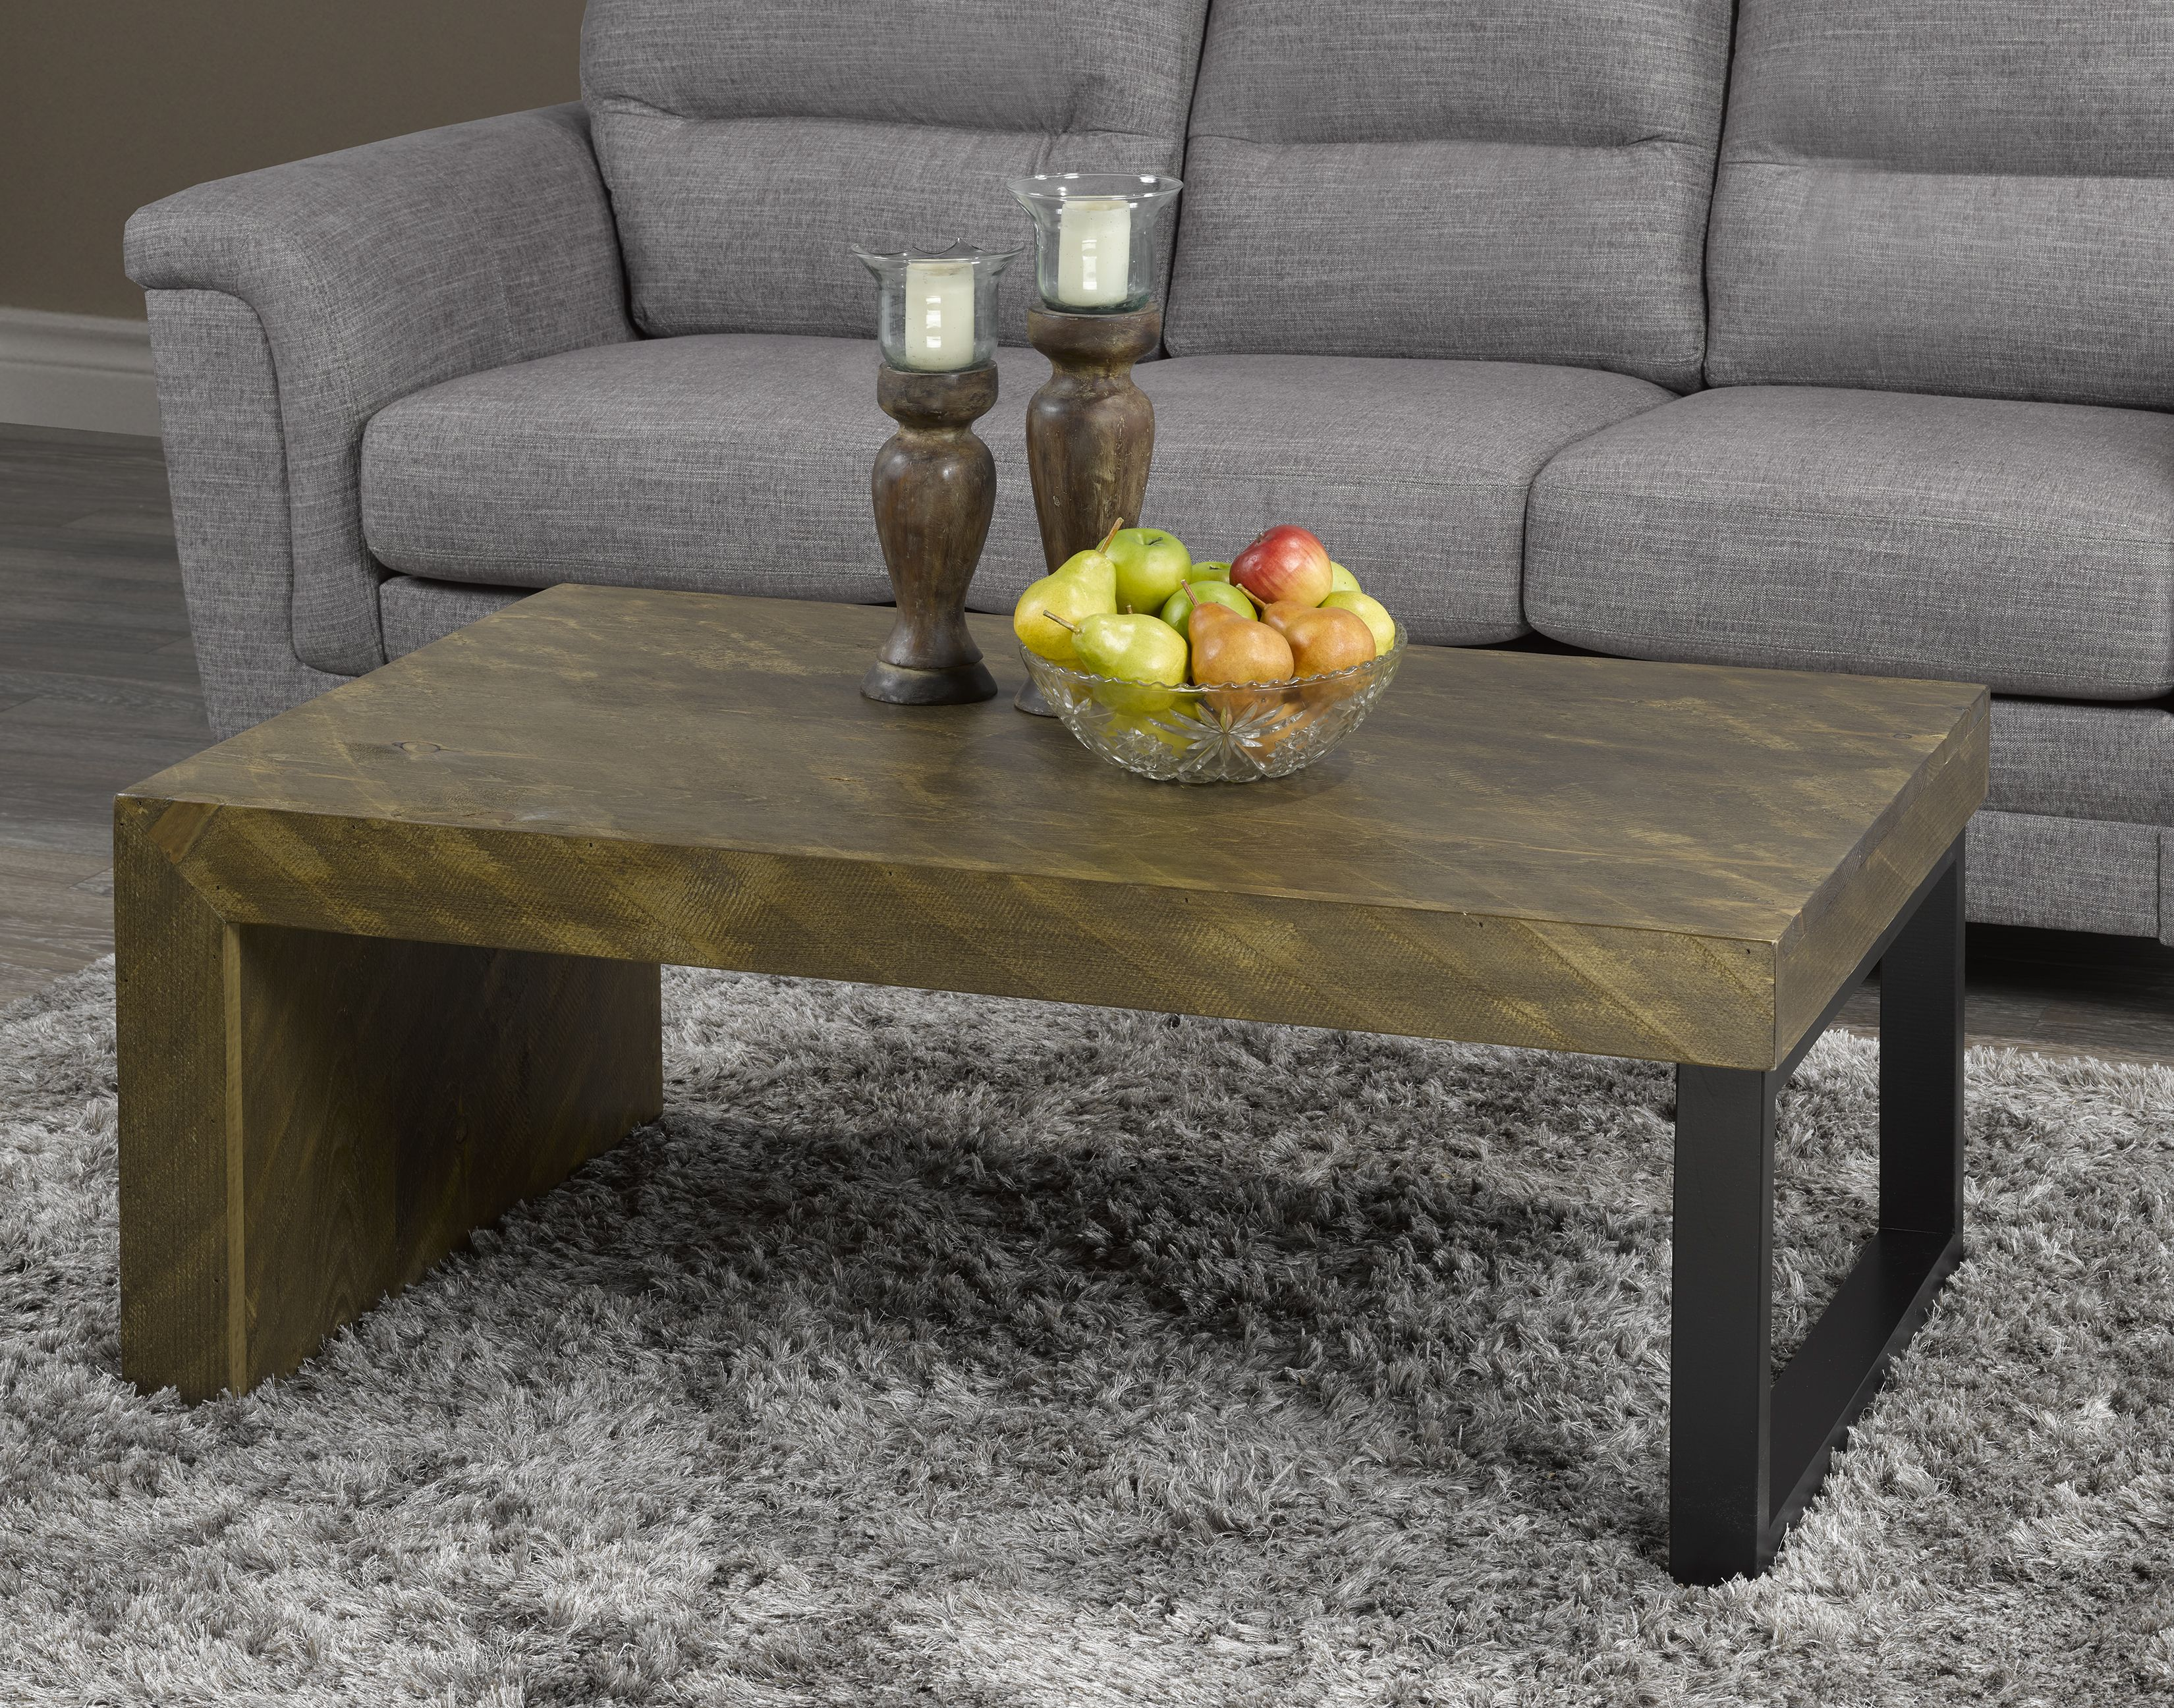 Made In Canada Solid Wood Nuvo Coffee Table Item 451 Rustic Pine Furniture Real Wood Furniture Pine Furniture